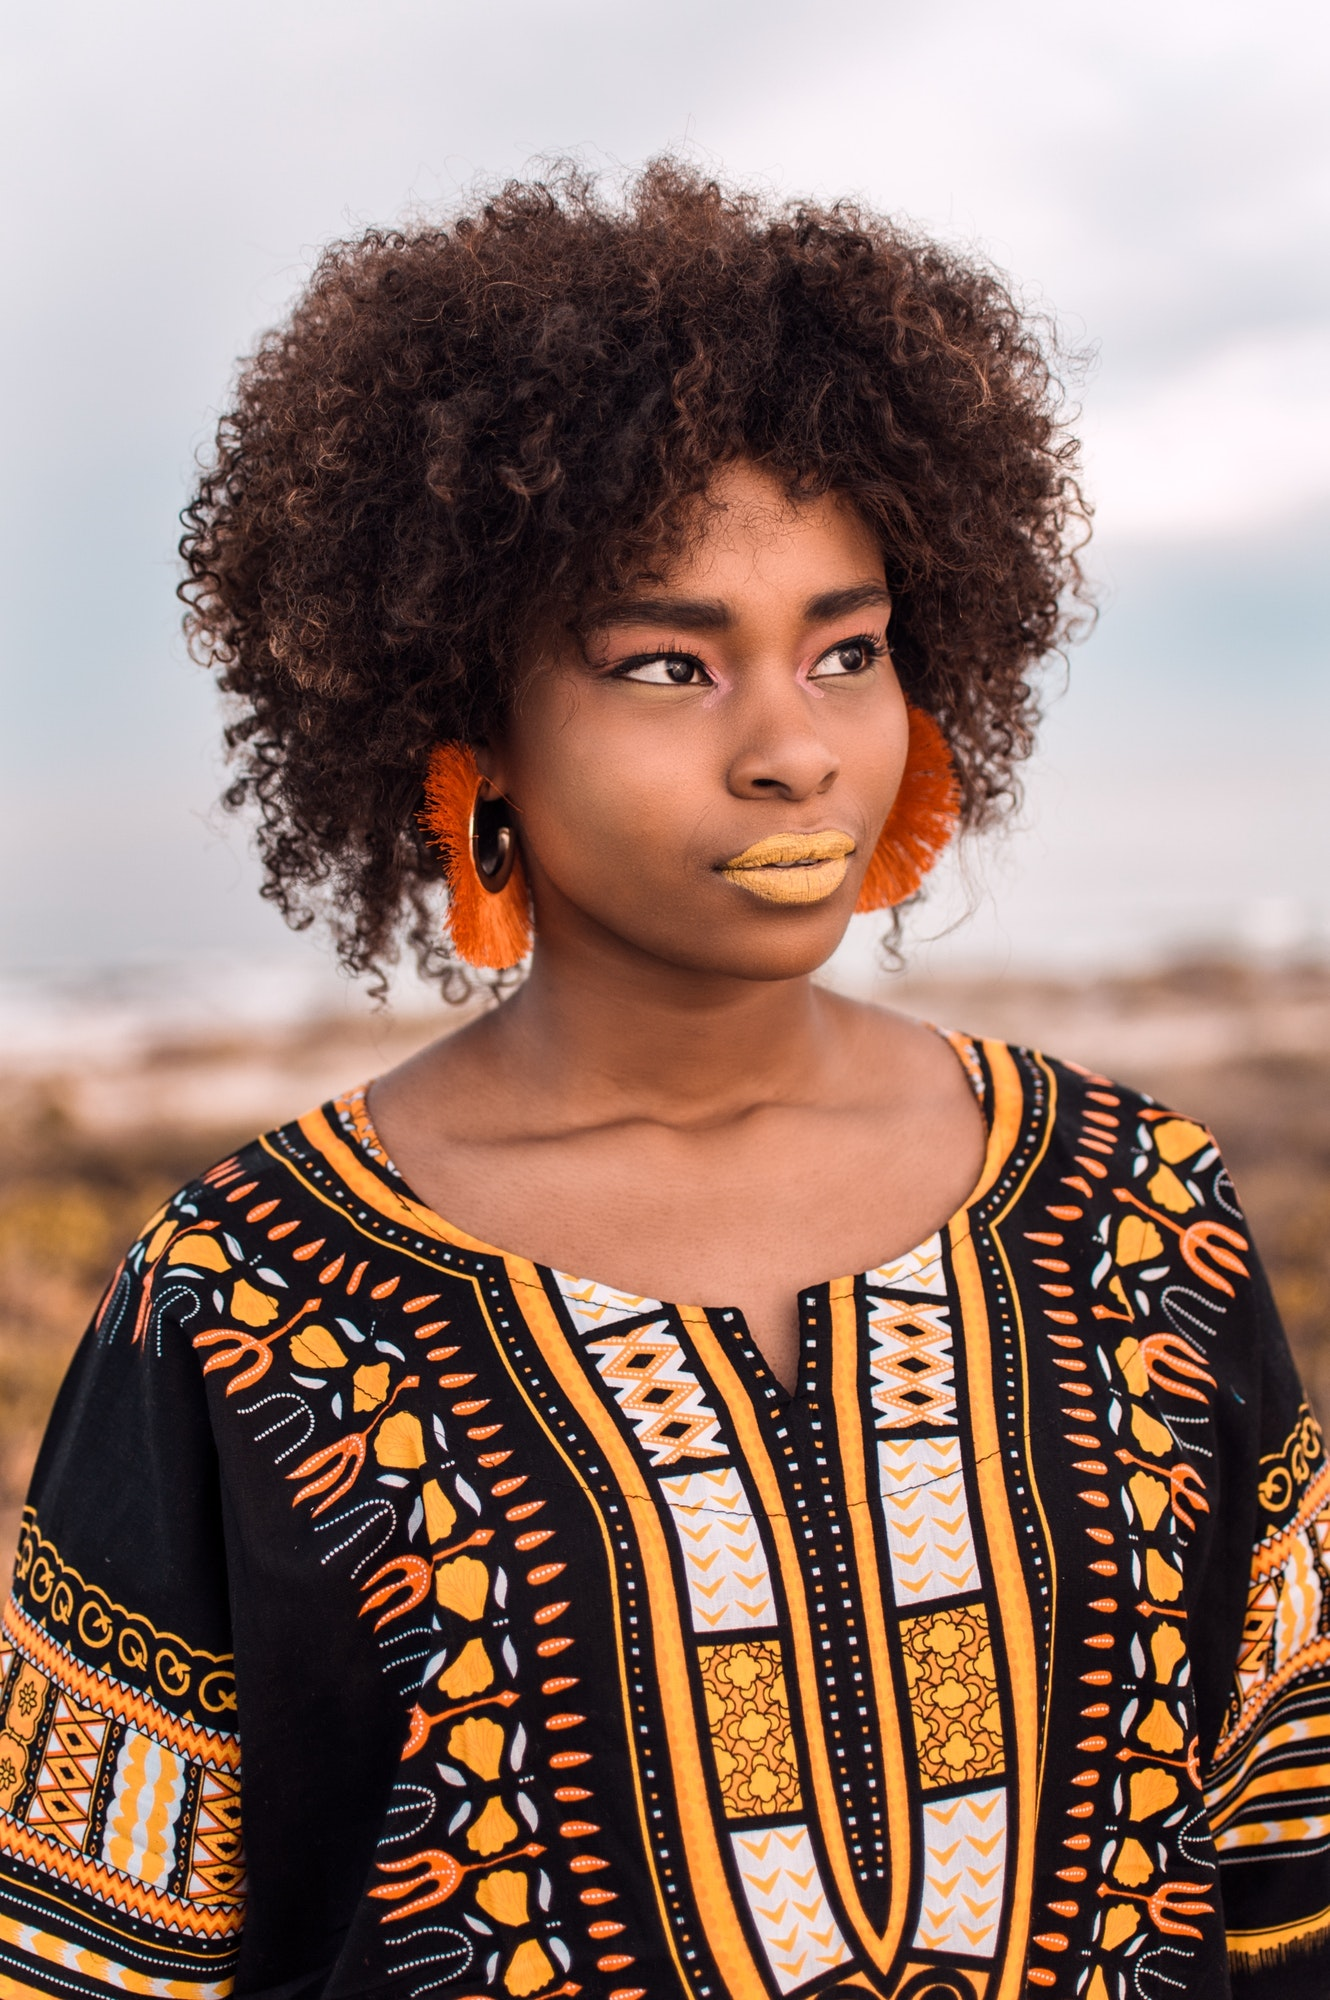 Young beautiful African woman, wearing African print design clothes